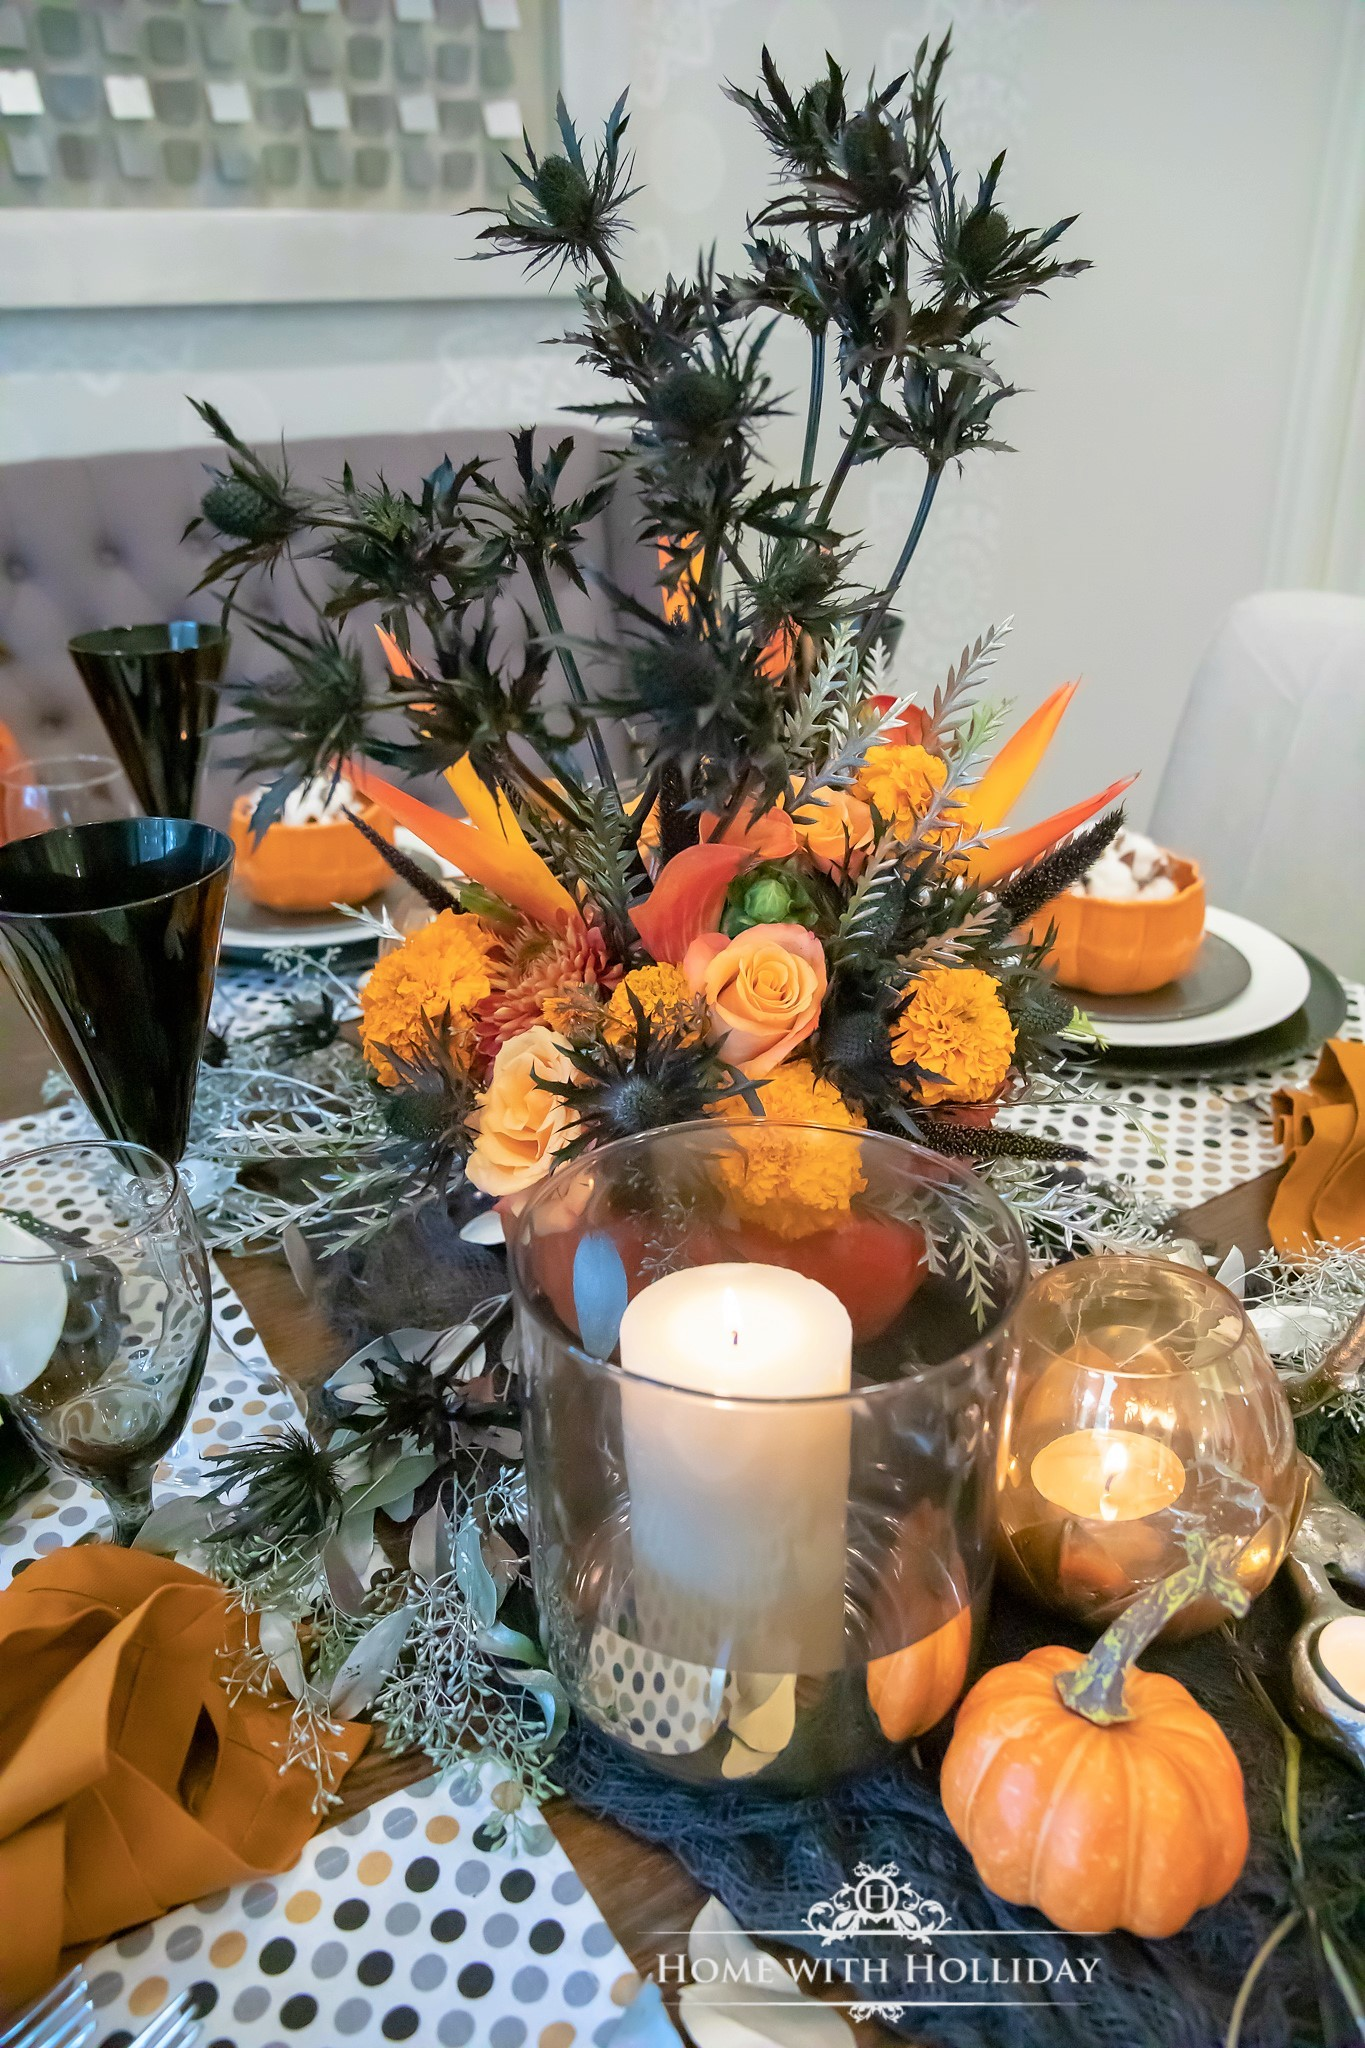 Centerpiece for an Elegant Halloween Table Setting with Pumpkins - Home with Holliday